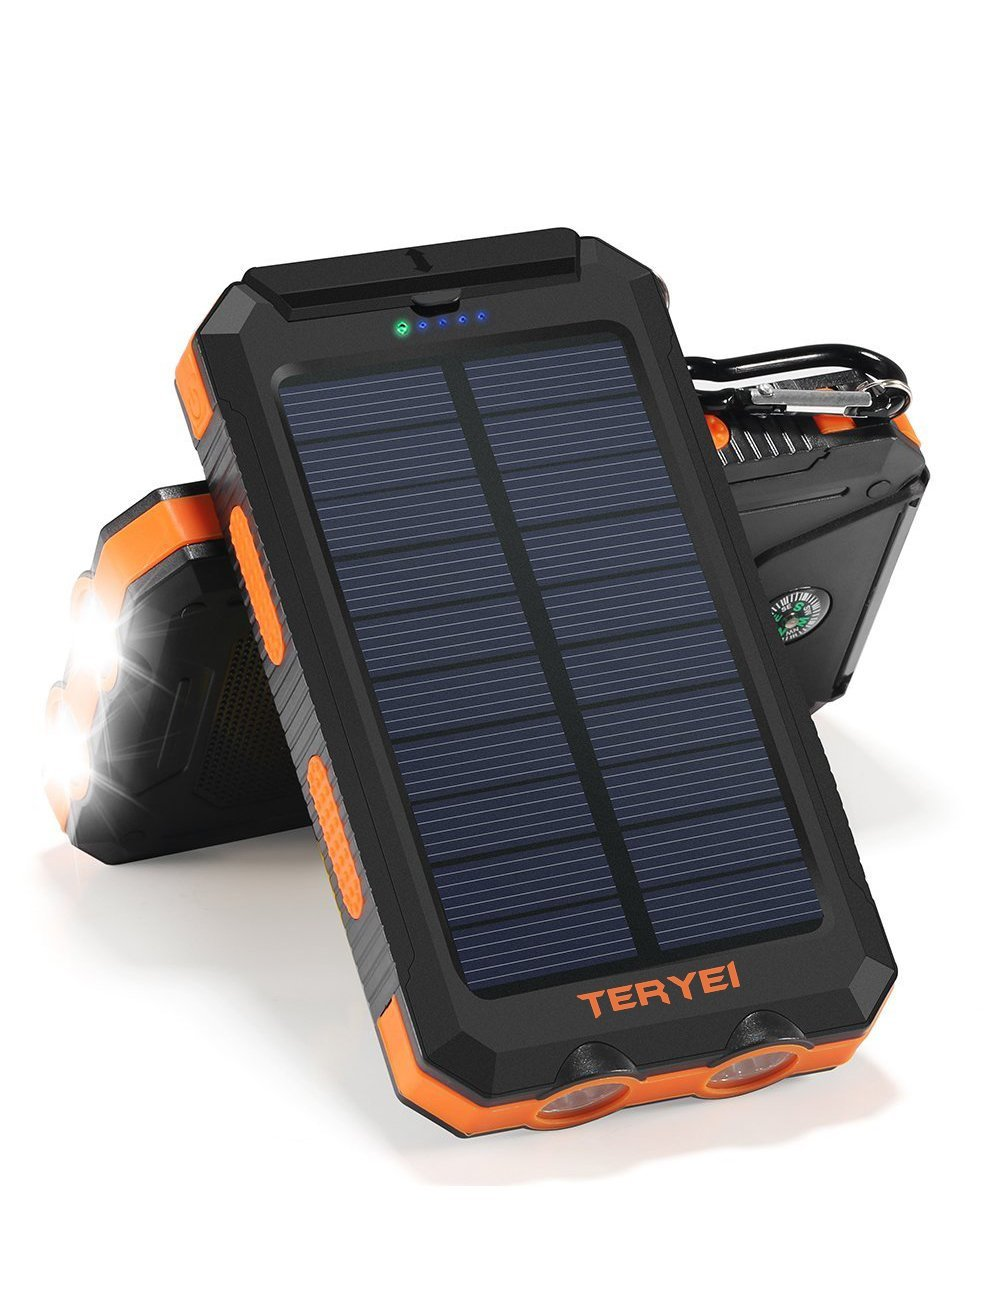 Solar Cell Phone Charger-   - This is another great gift idea especially if your man is adventurous!  This is perfect for camping, hiking, or any adventure because this charger is powered by the sun.  No more worrying about your phone or portable charger dying when you have no outlets nearby.